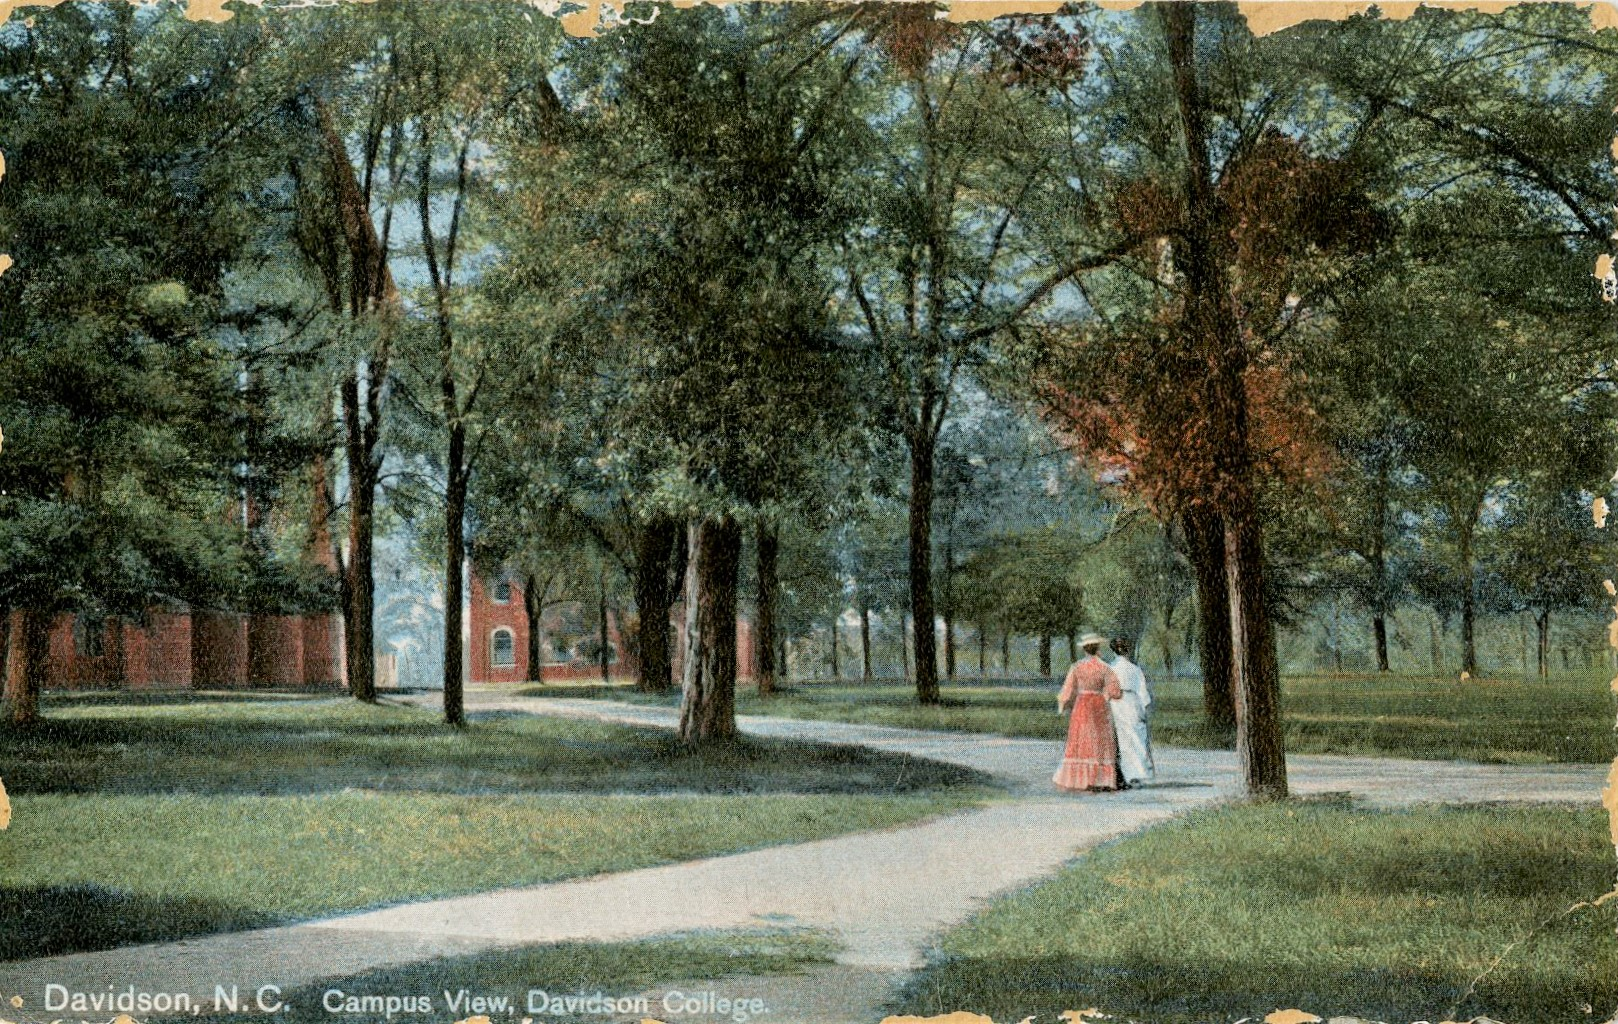 color postcard of campus walkway with two women walking ca. 1890s